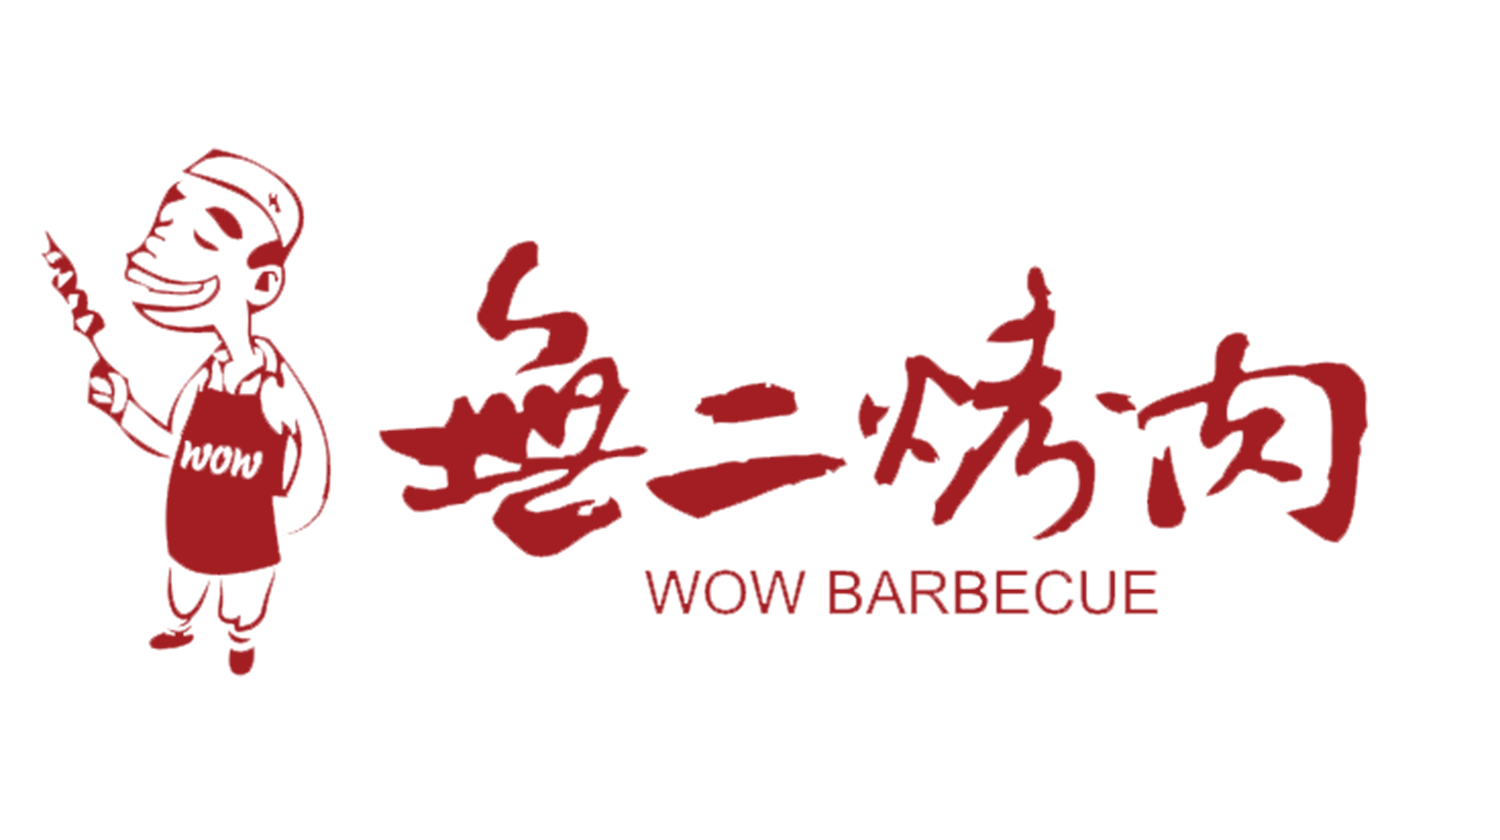 Wow Barbecue